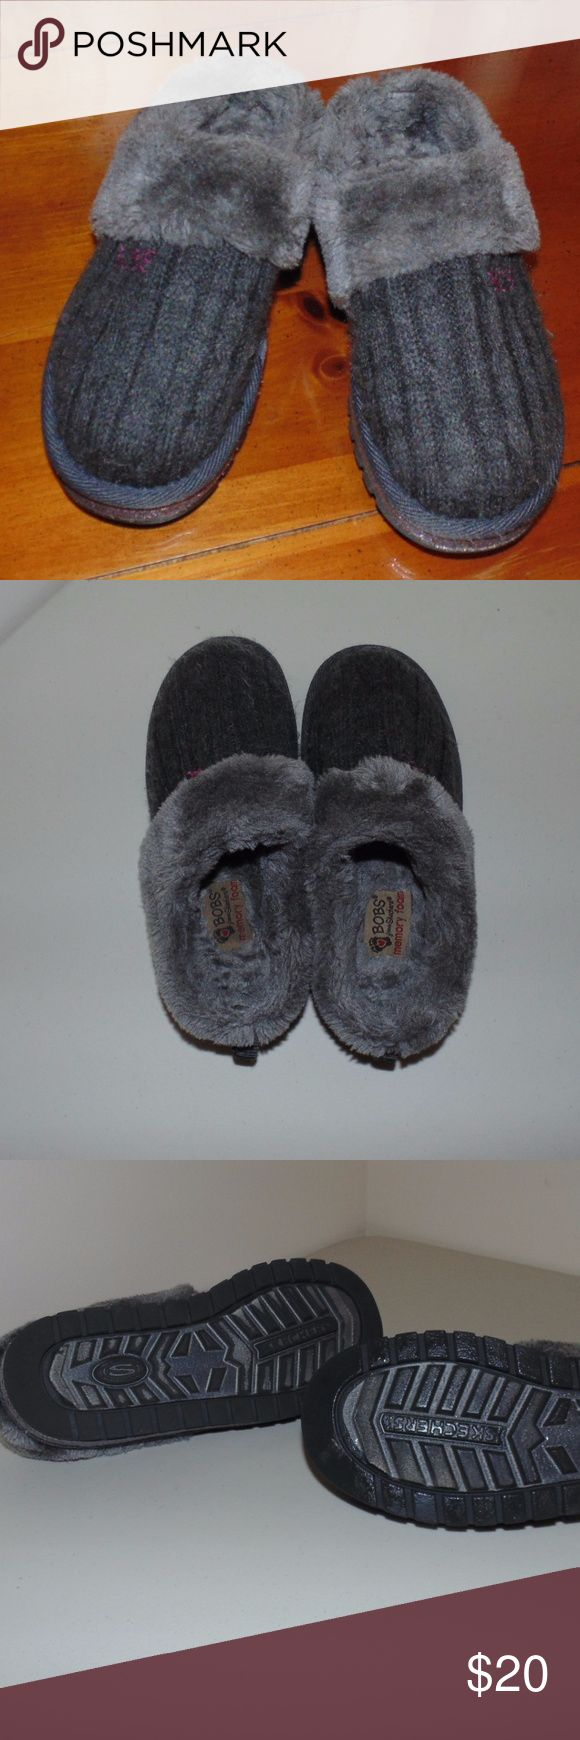 BOB's by Sketchers BOBS slip on from Skechers Excellent Condition Size:12/13 Cozy Fur lined Skechers Shoes Slippers